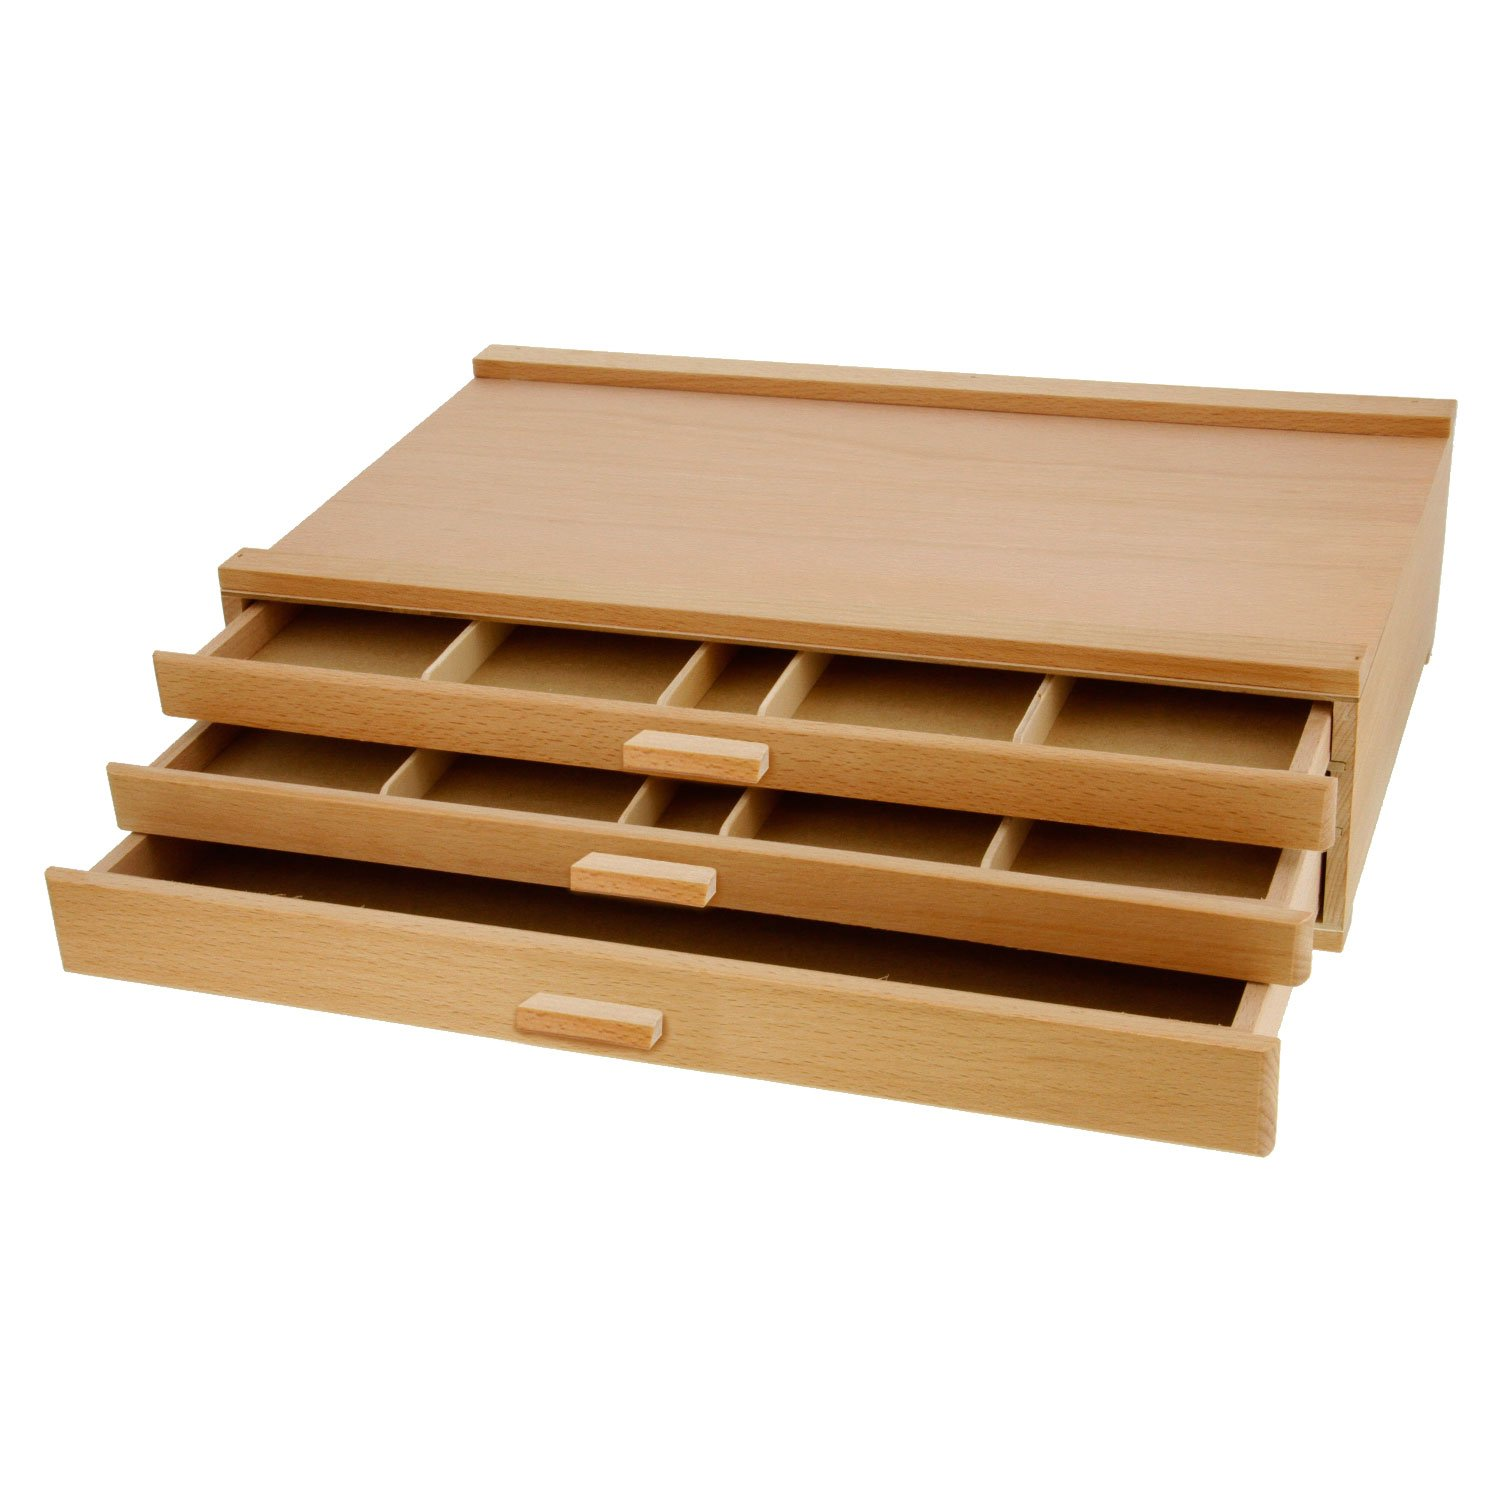 3 Drawer Wood Pastel Storage Box 15-3//4 x 9-1//2 x 3-1//2 inches